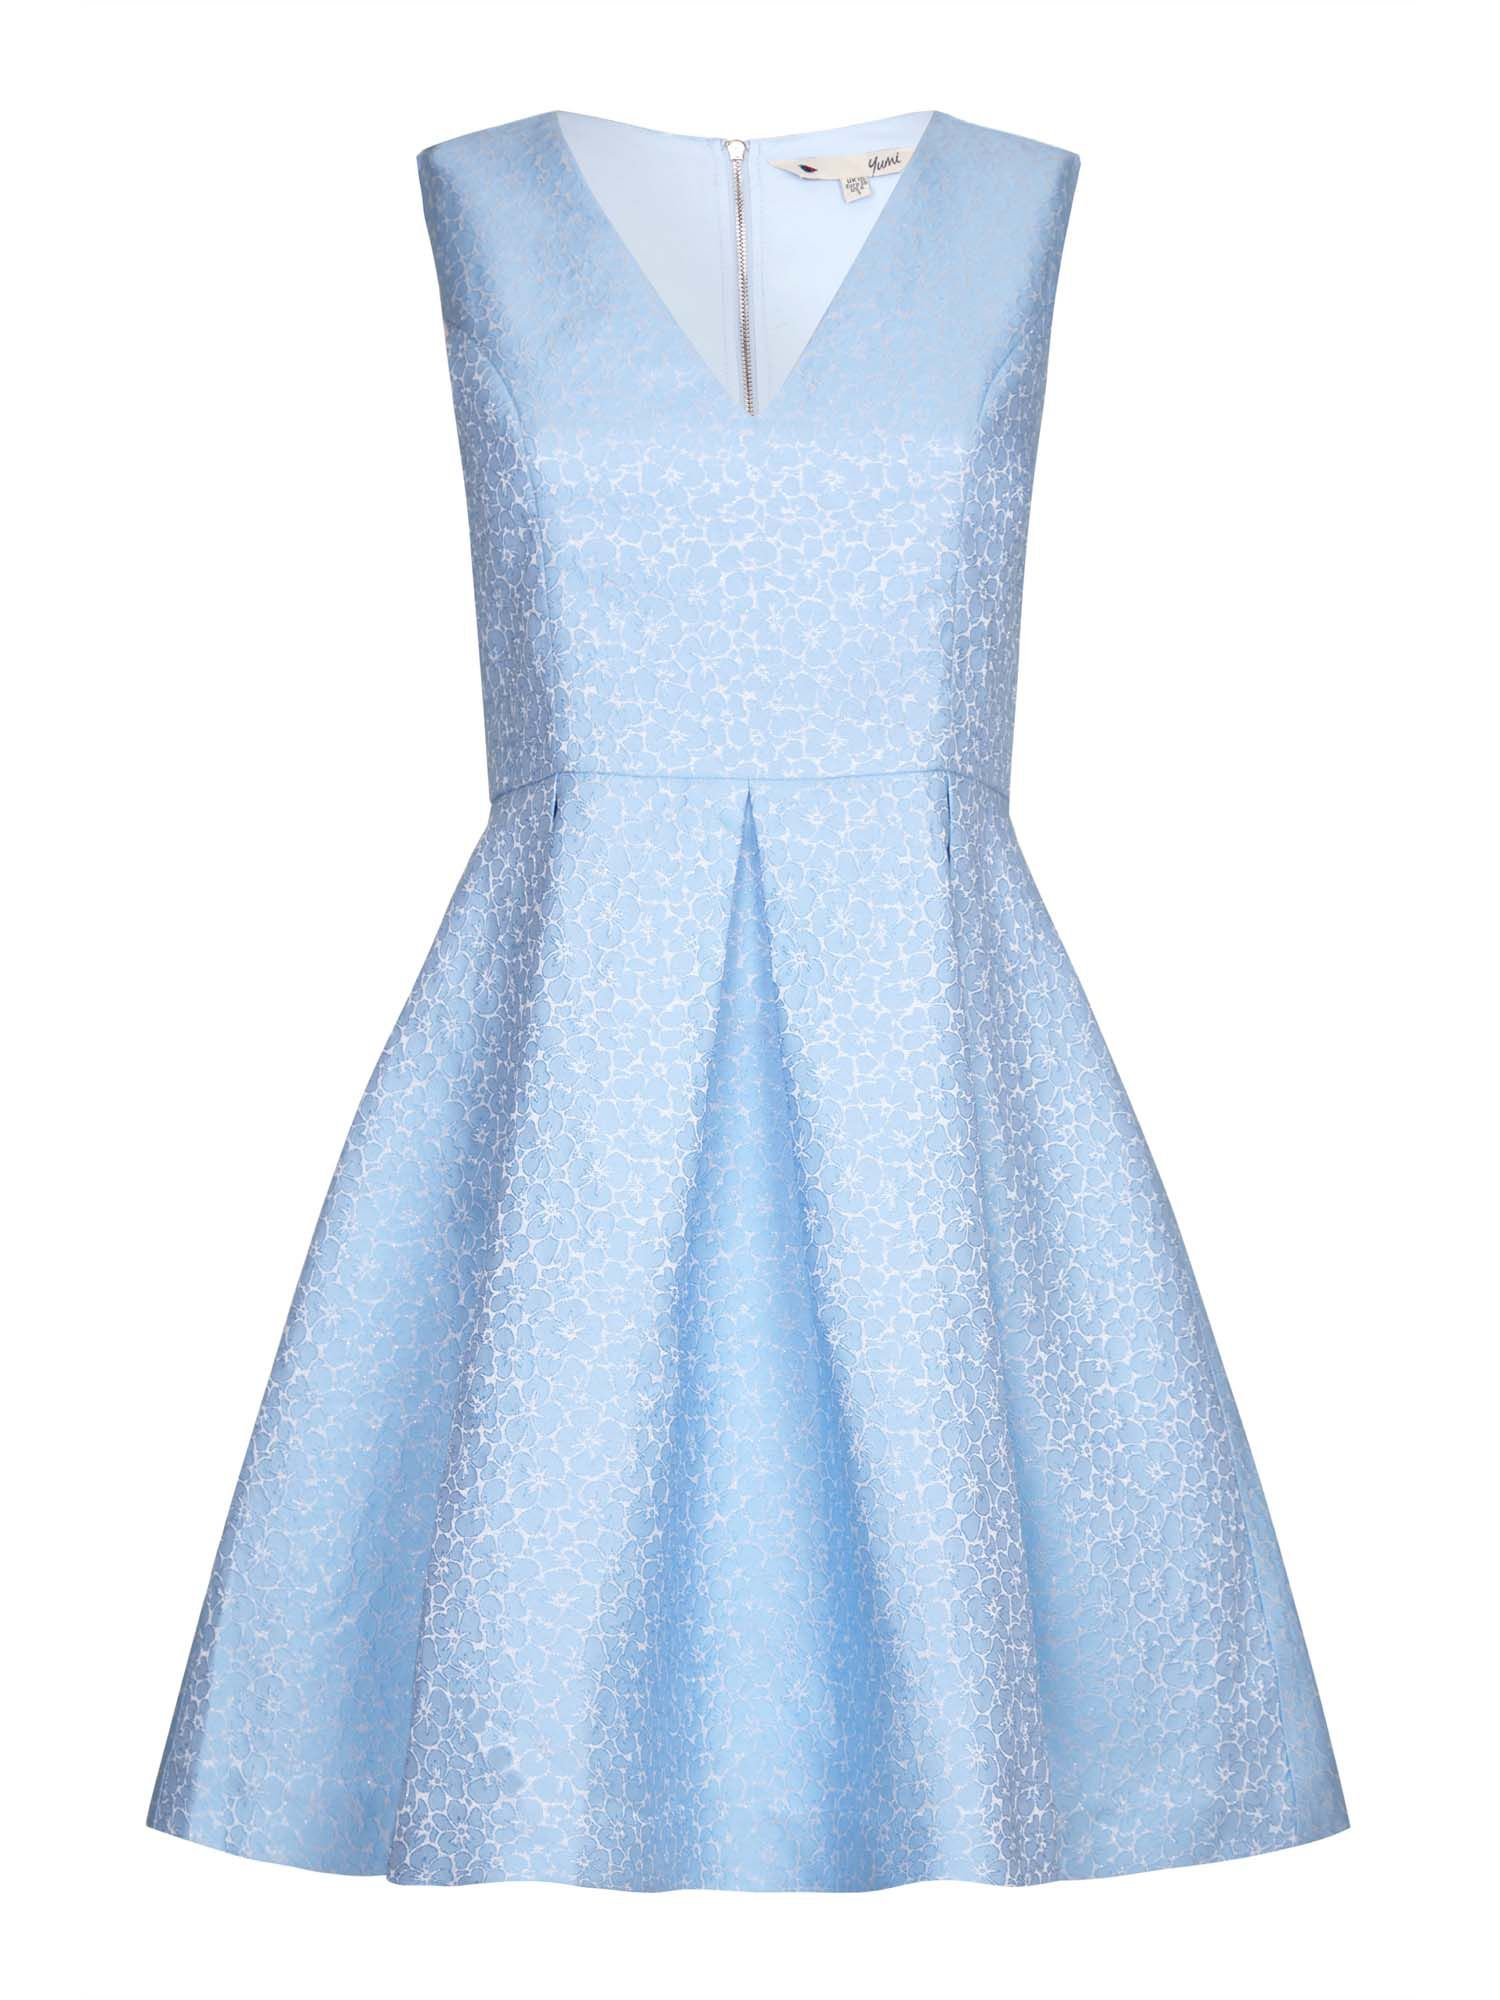 Yumi Yumi Jacquard Sleeveless Dress, Blue